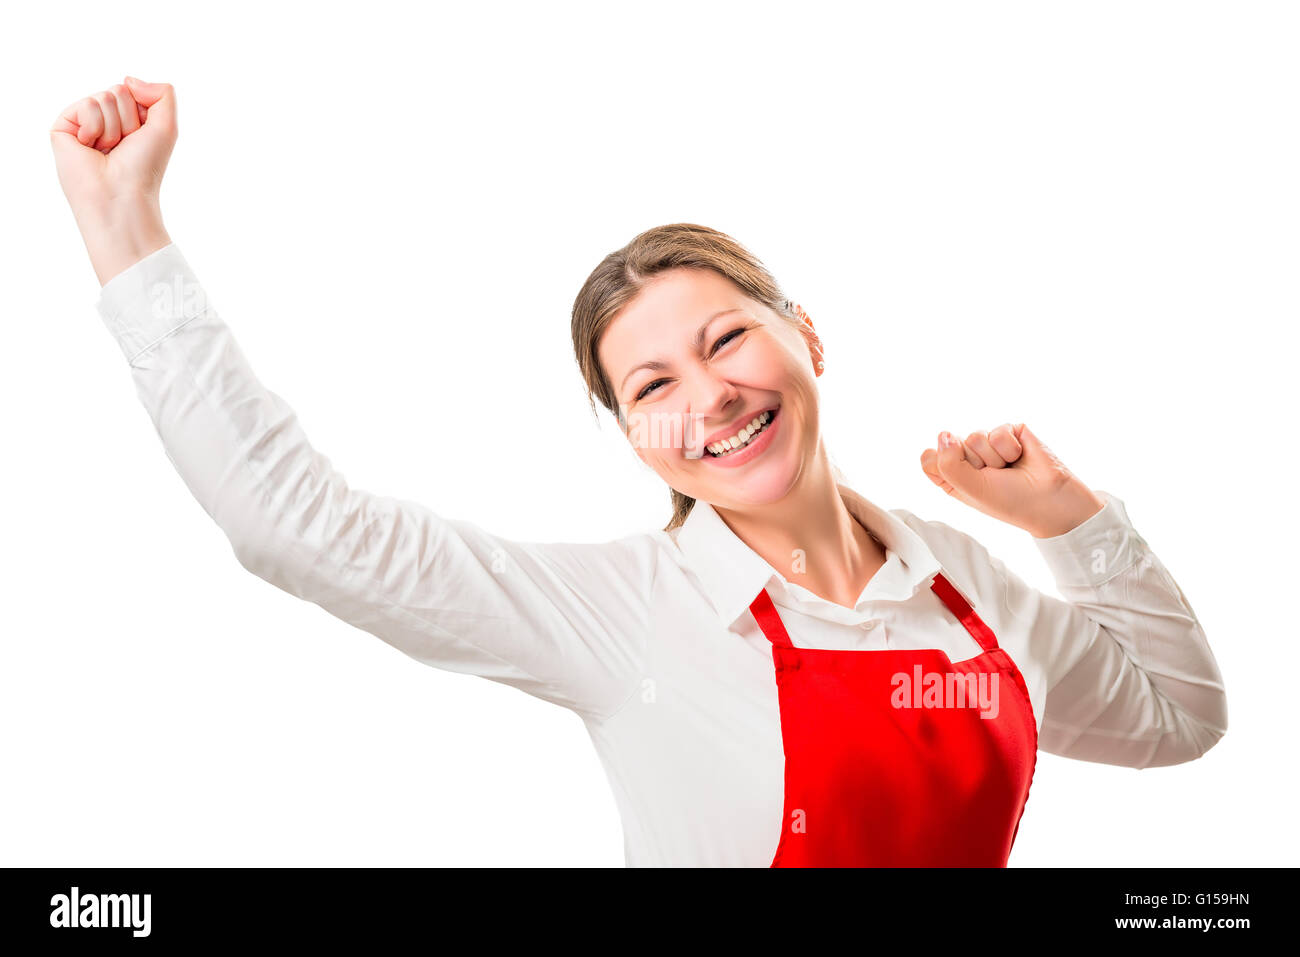 joyful pretty woman in a red apron on a white background rejoices - Stock Image